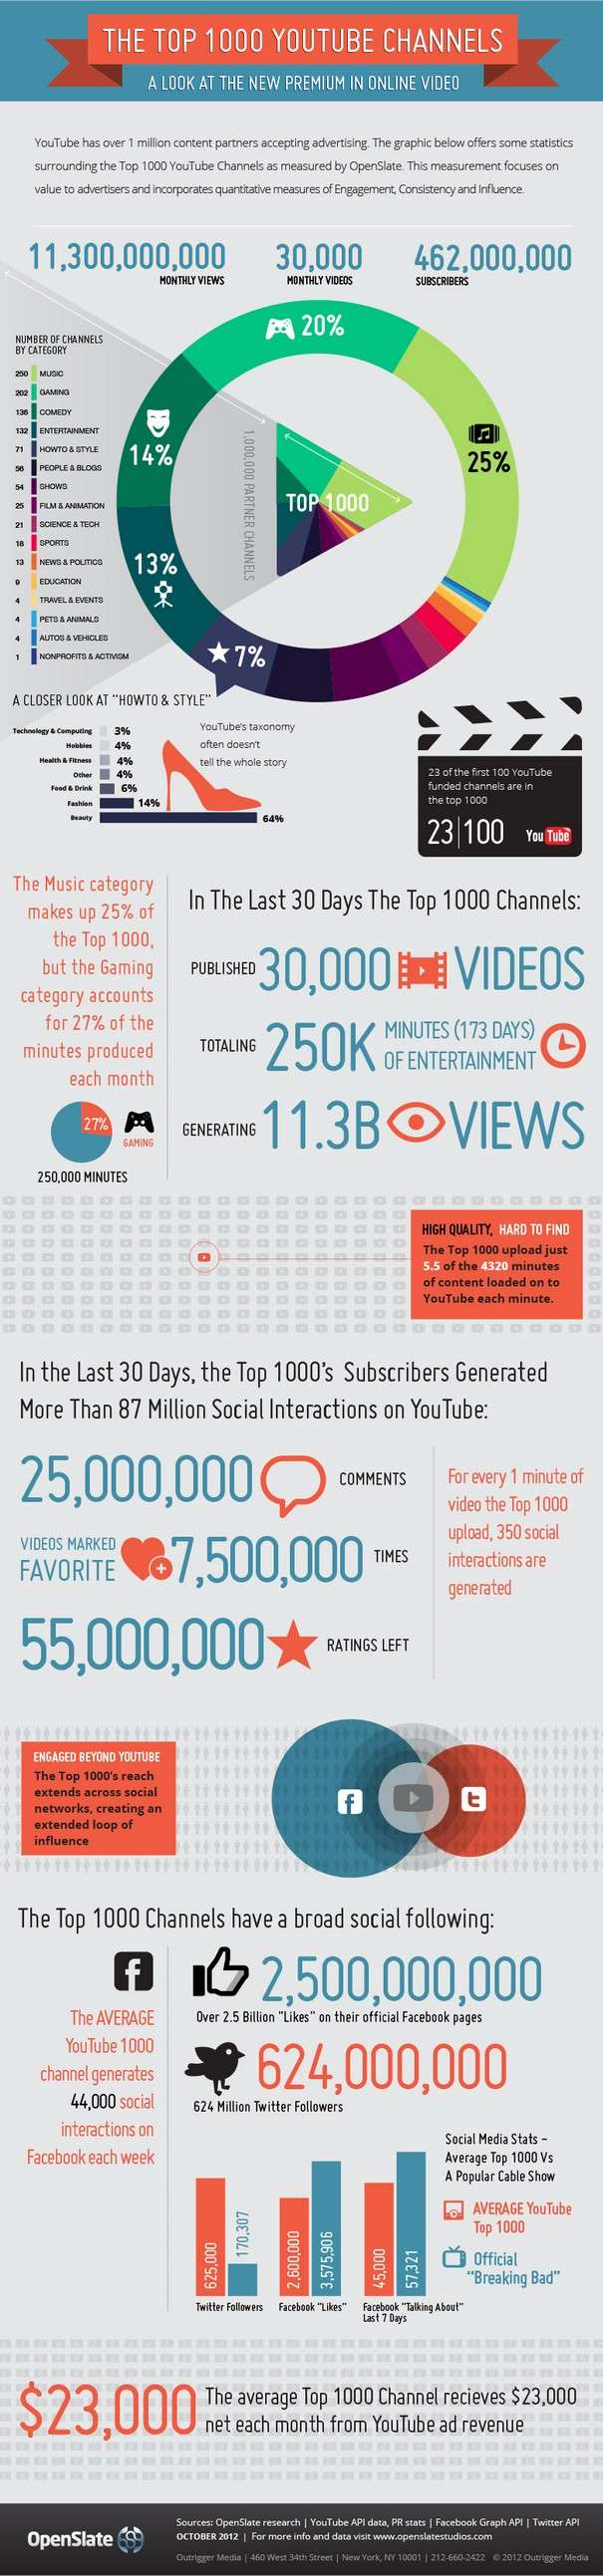 The Top 1000 Youtube Channels Infographic